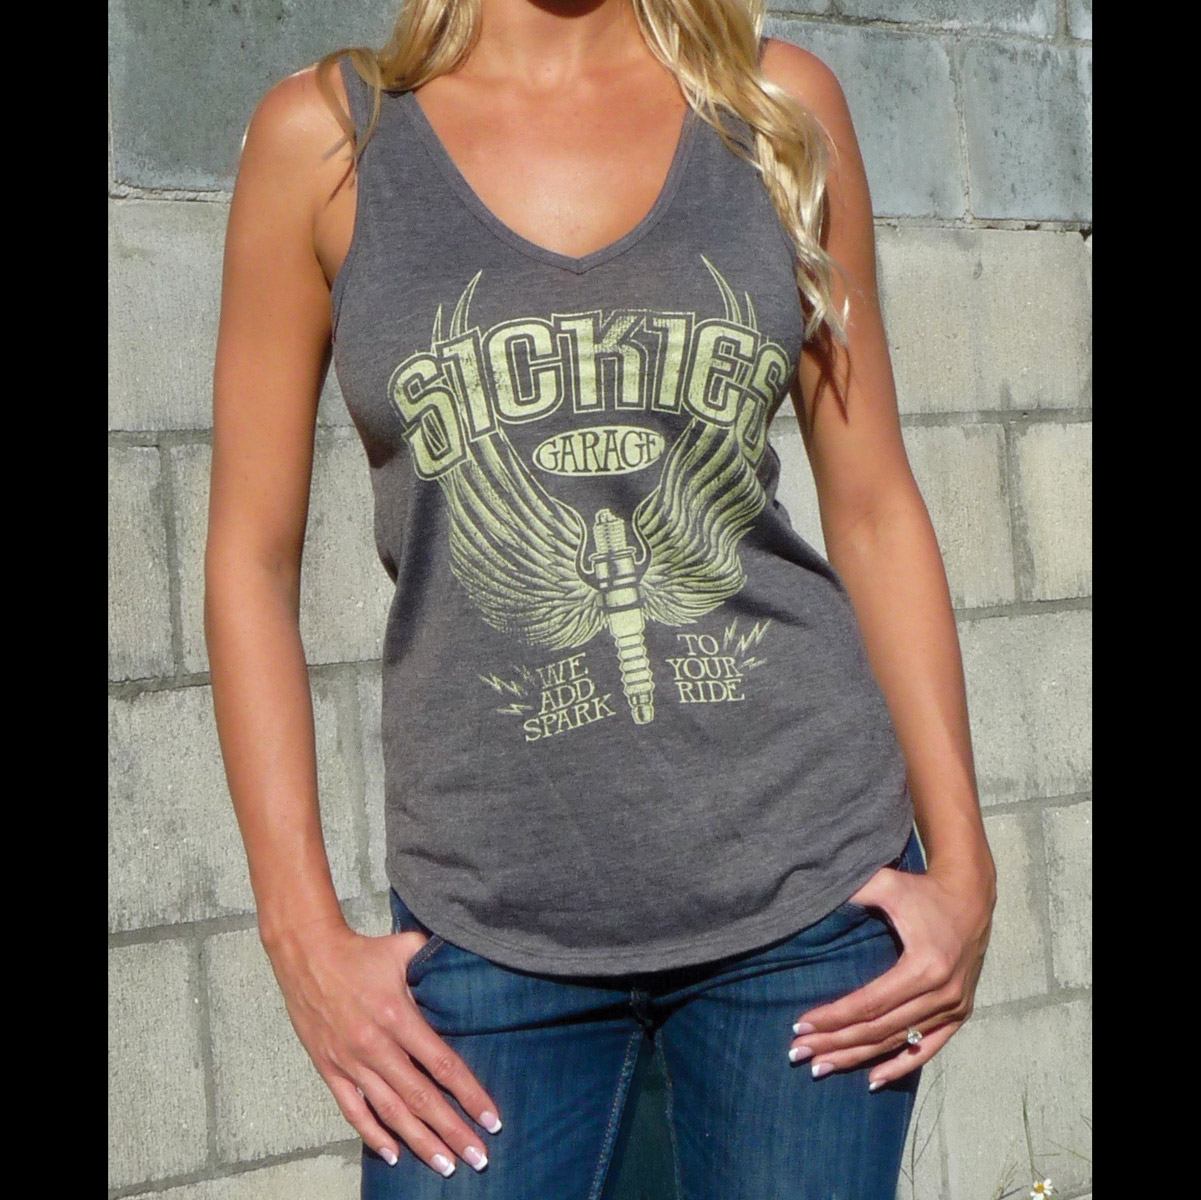 Sick Boy Sickies Garage Women's Spark Plug Gray Tank Top